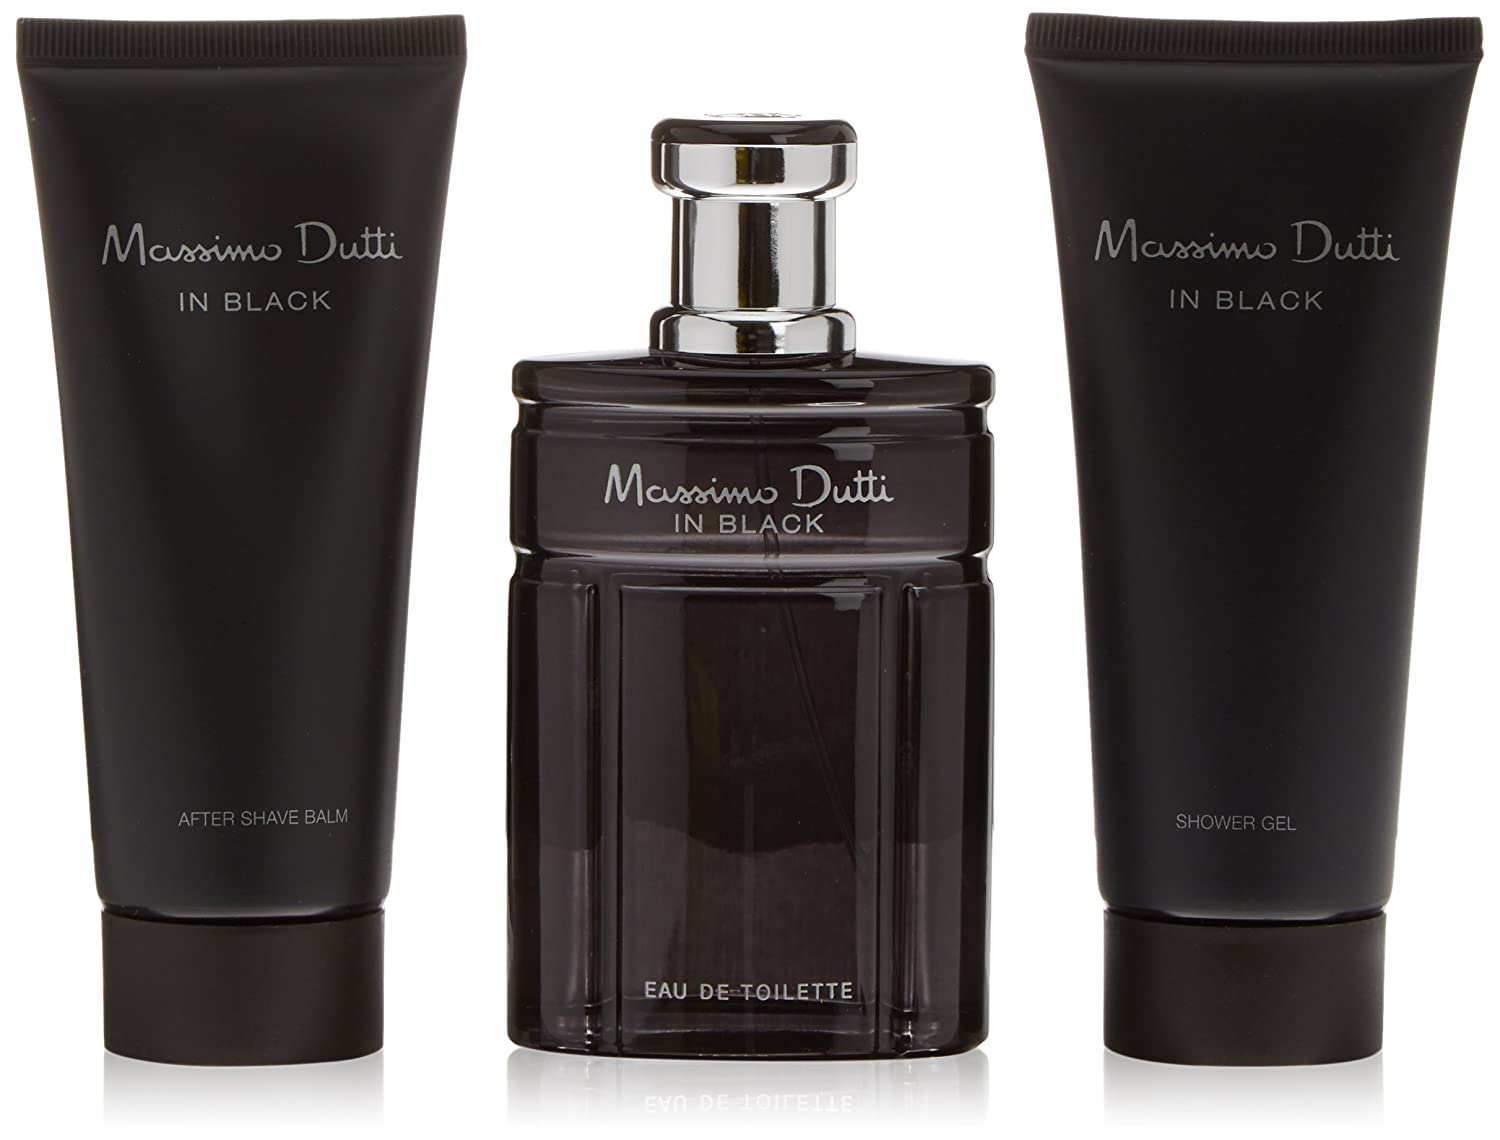 Massimo Dutti In Black Agua de Colonia + Bálsamo After-Shave + Gel de Ducha - 1 Pack: Amazon.es: Belleza